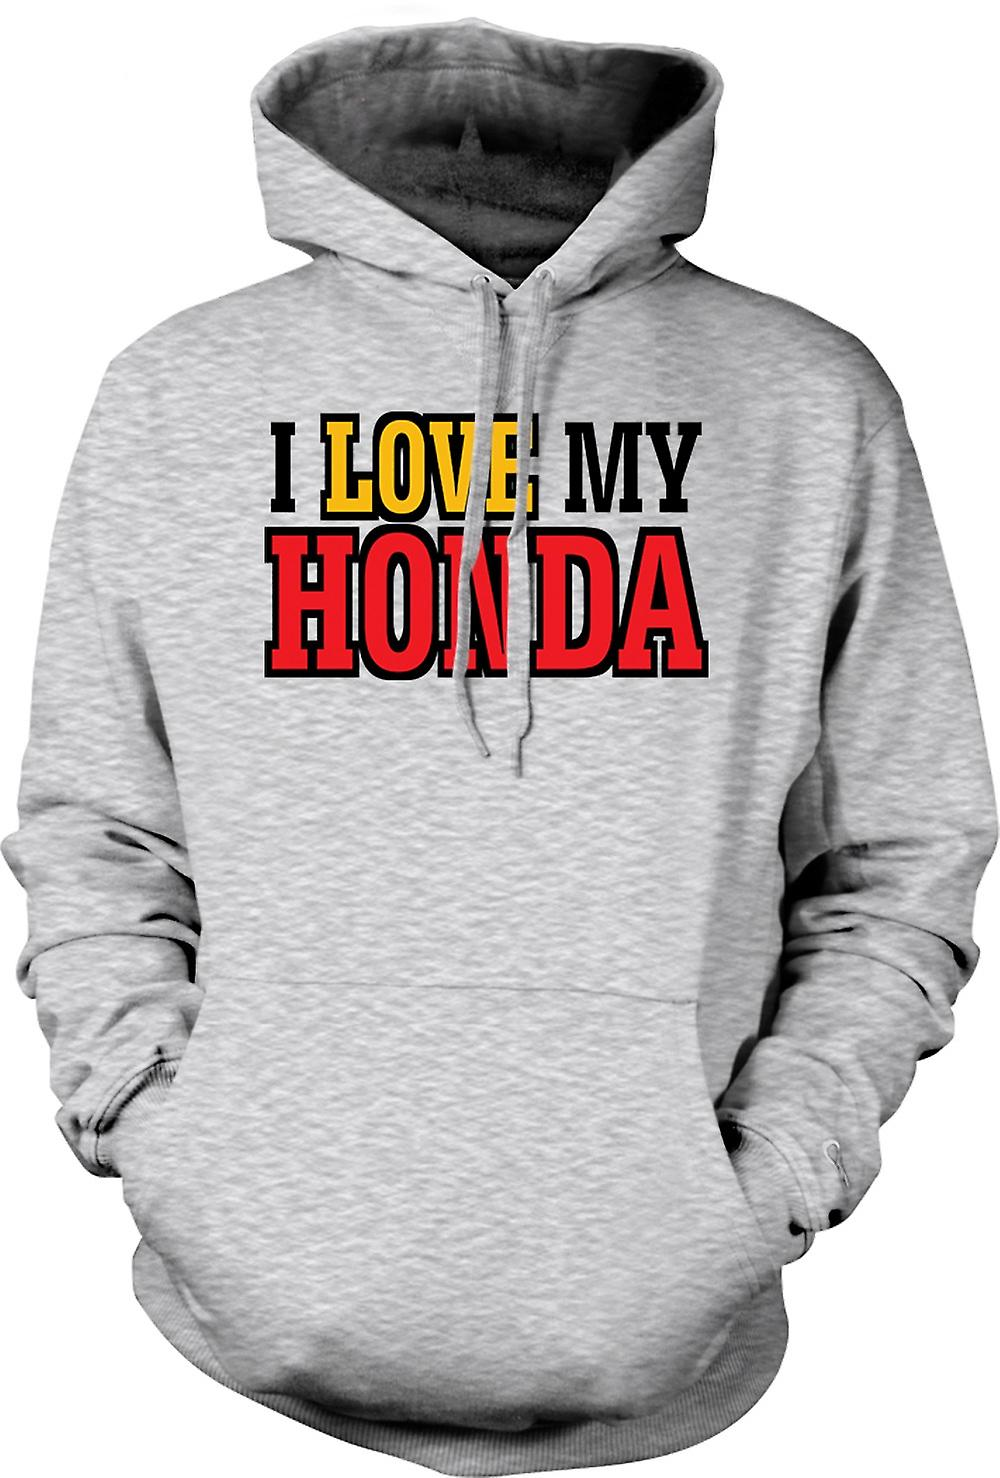 Mens Hoodie - I Love My Honda - Car Enthusiast